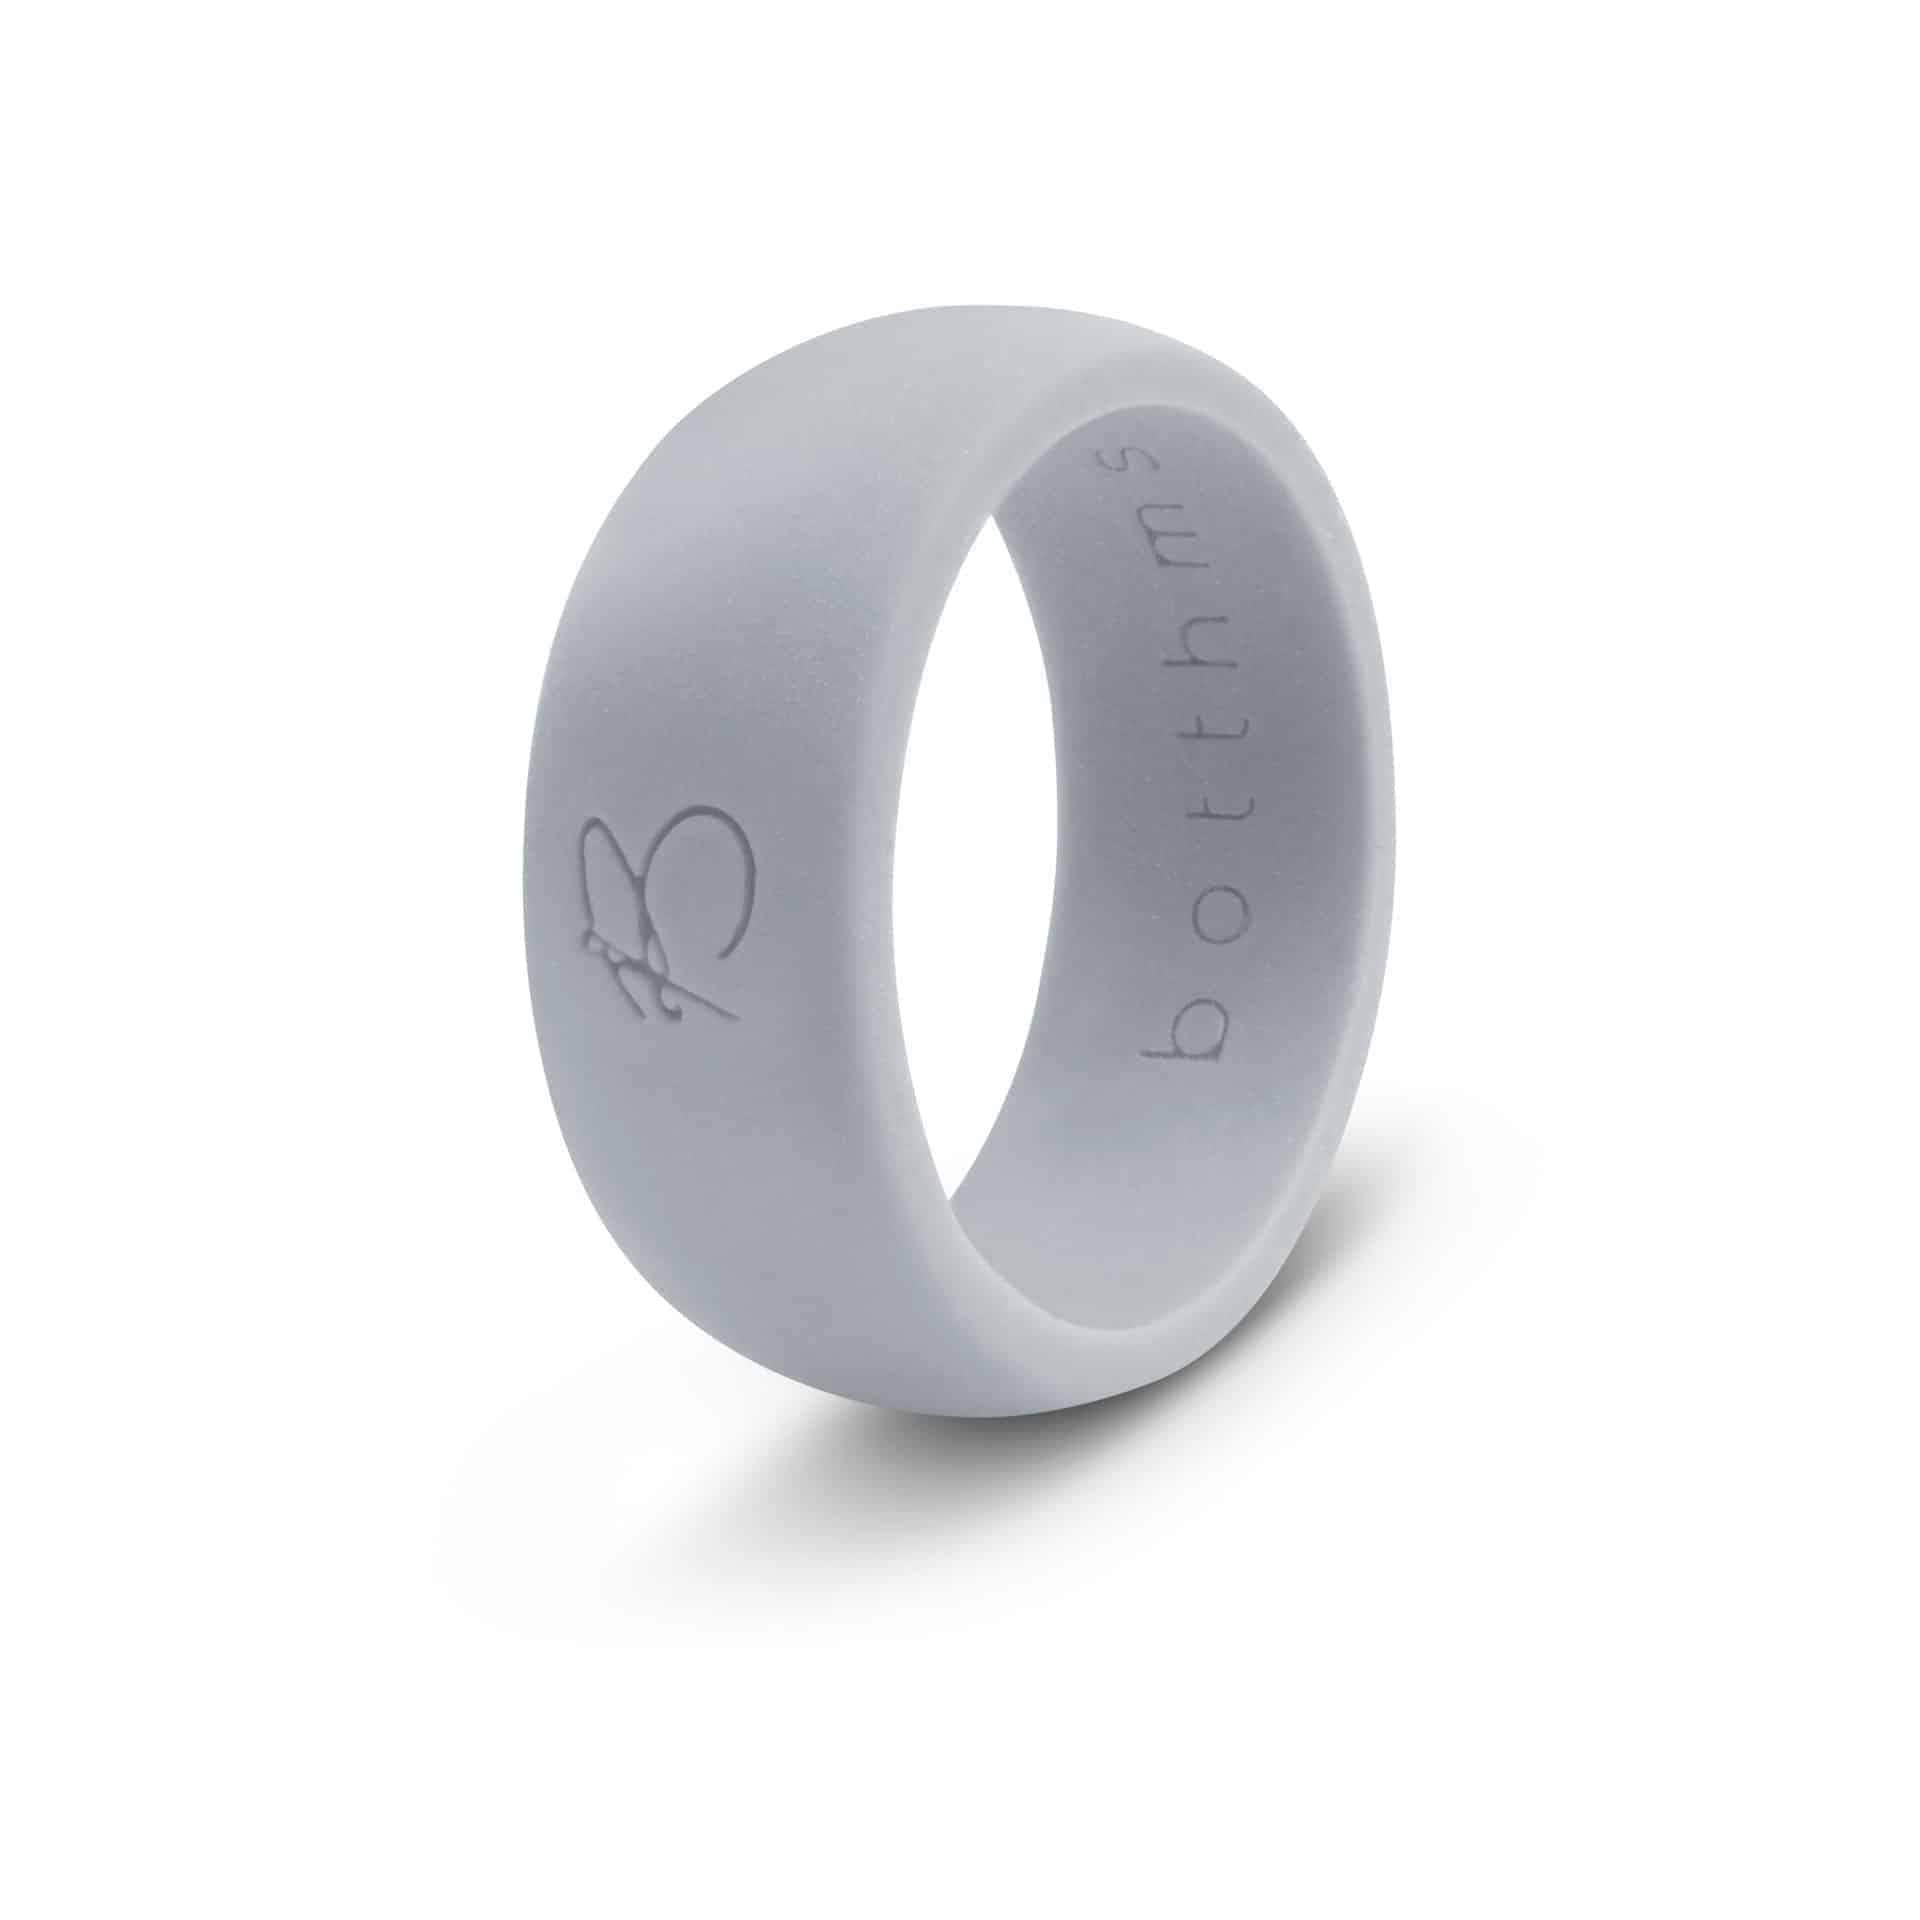 botthms grey active silicone ring